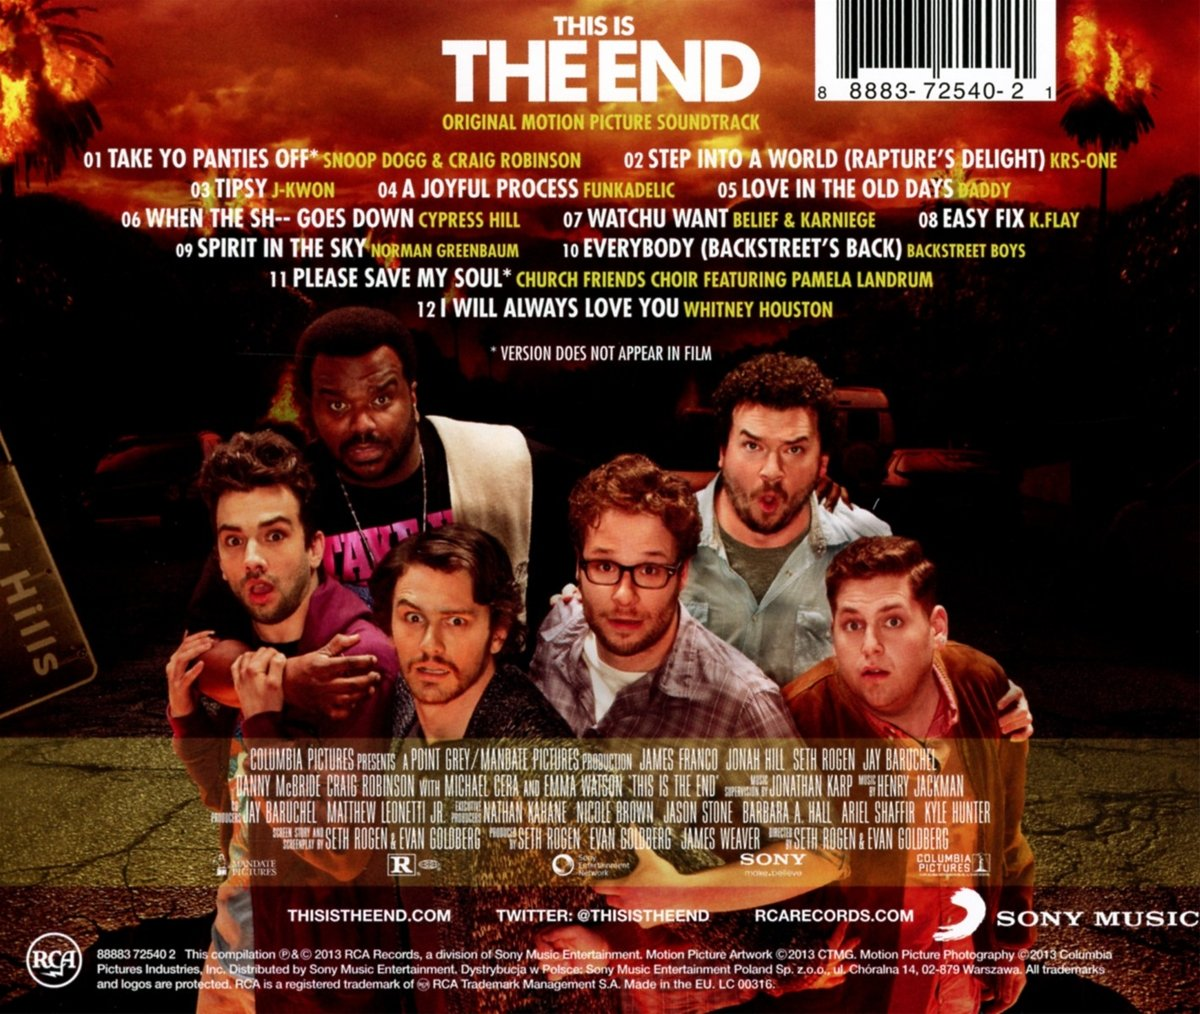 100 Free Download This Is The End 3d Hd Preview Halloween